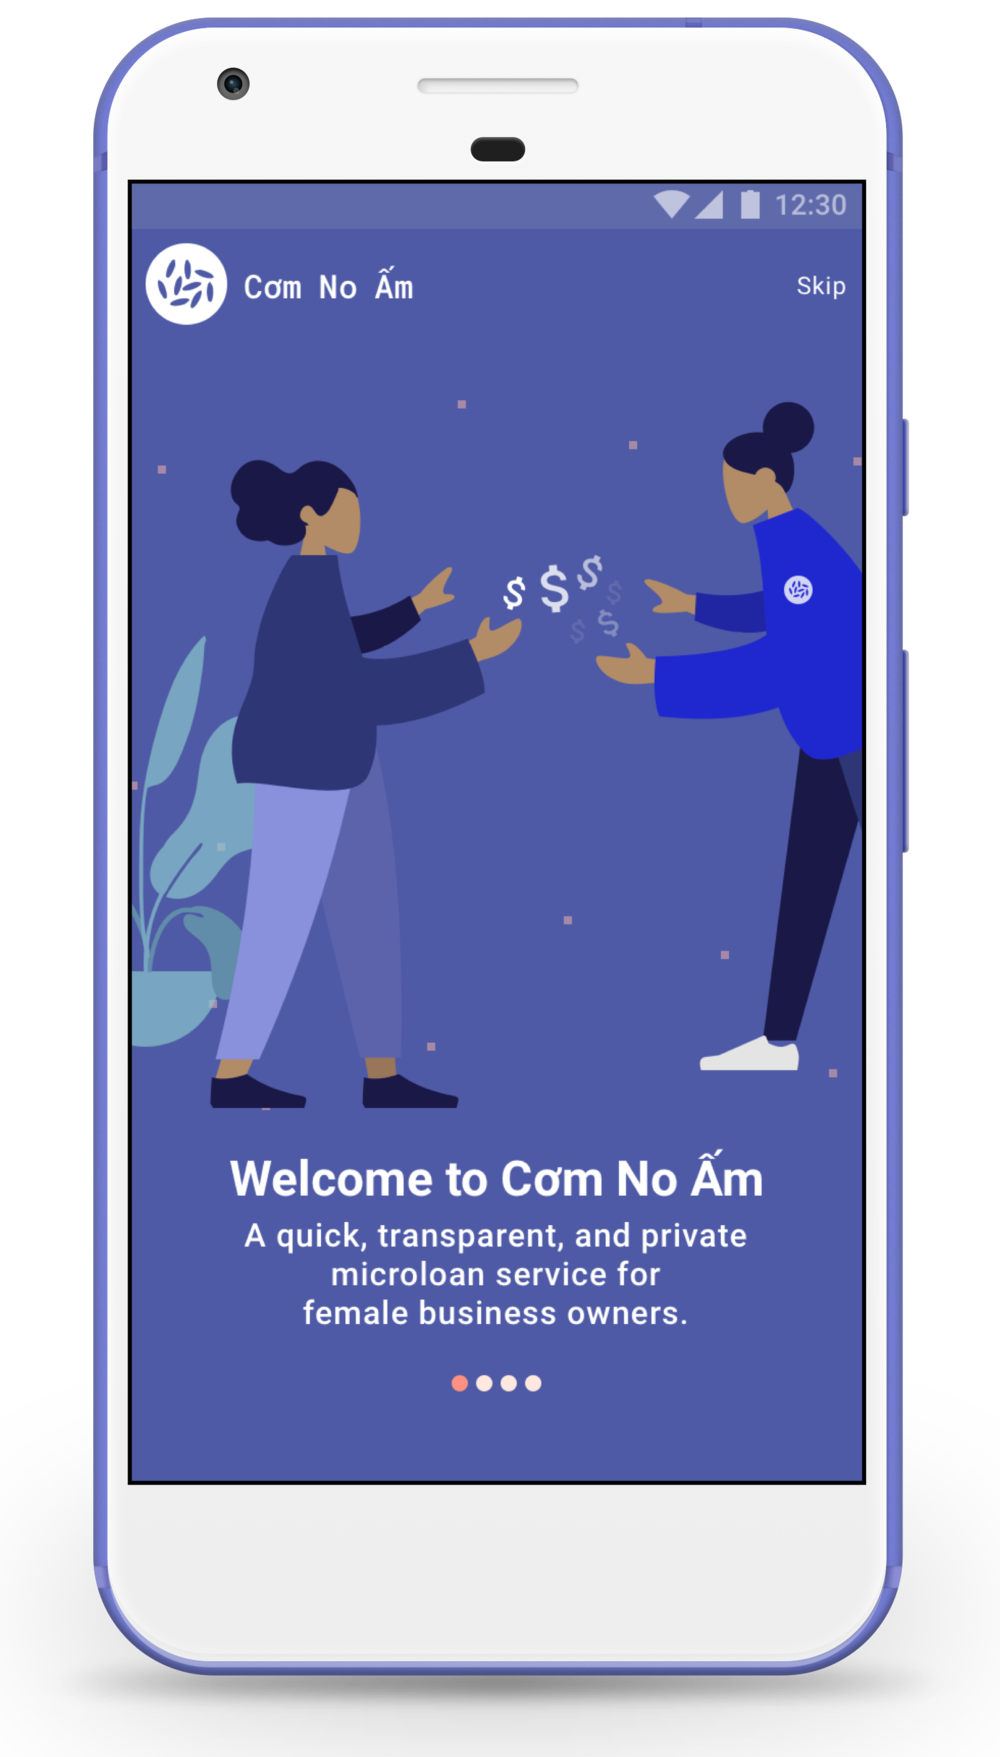 Market Adoption Plan:  Customer teams are sent to approach the users at the markets to introduce the new service and onboard them onto the app. The teams are equipped with a conversational guide and leave-behind materials.